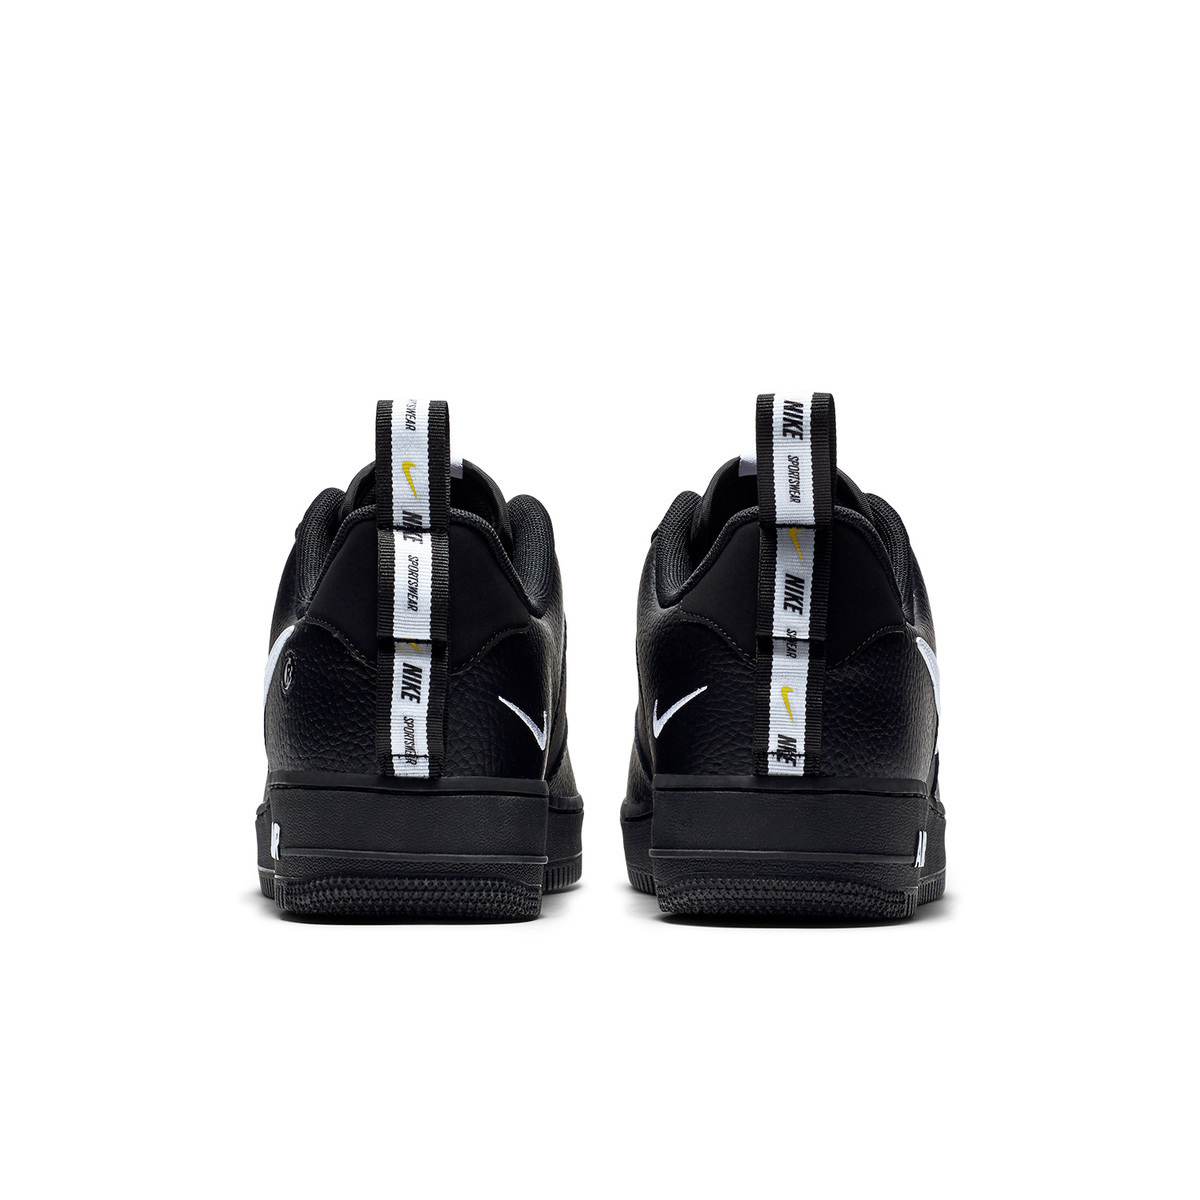 Nike Official Air Force 1 Breathable Men Skateboarding Shoes